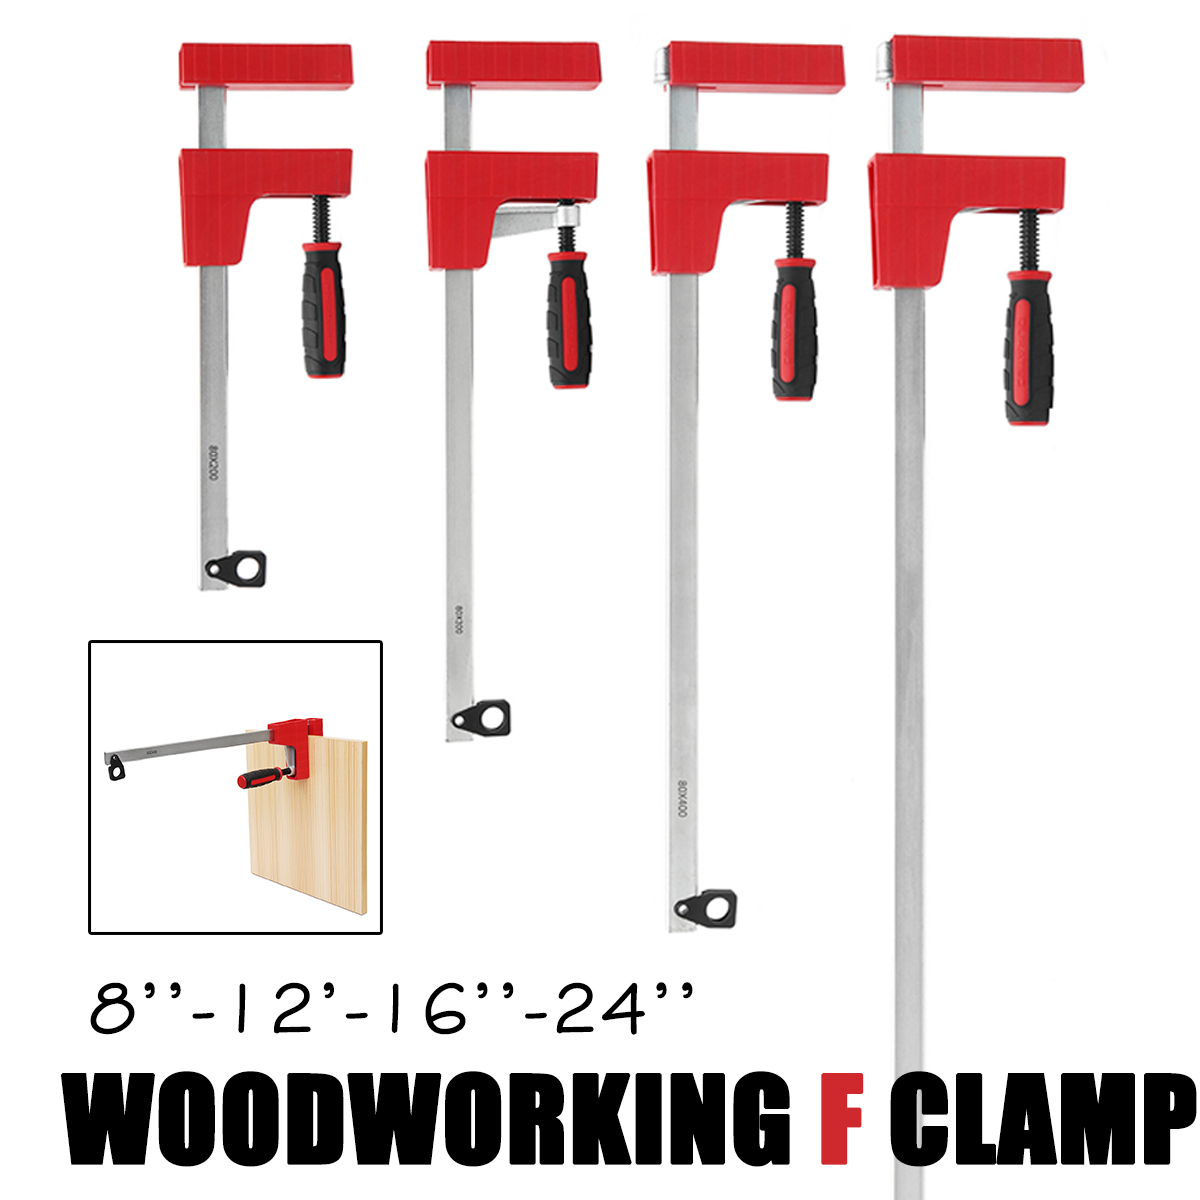 8/12/16/24 Inch F Parallel Clamp Heavy   80mm Depth F Clamp Woodworking Clamp Adjustable DIY Wood Carpenter Clamps Grip